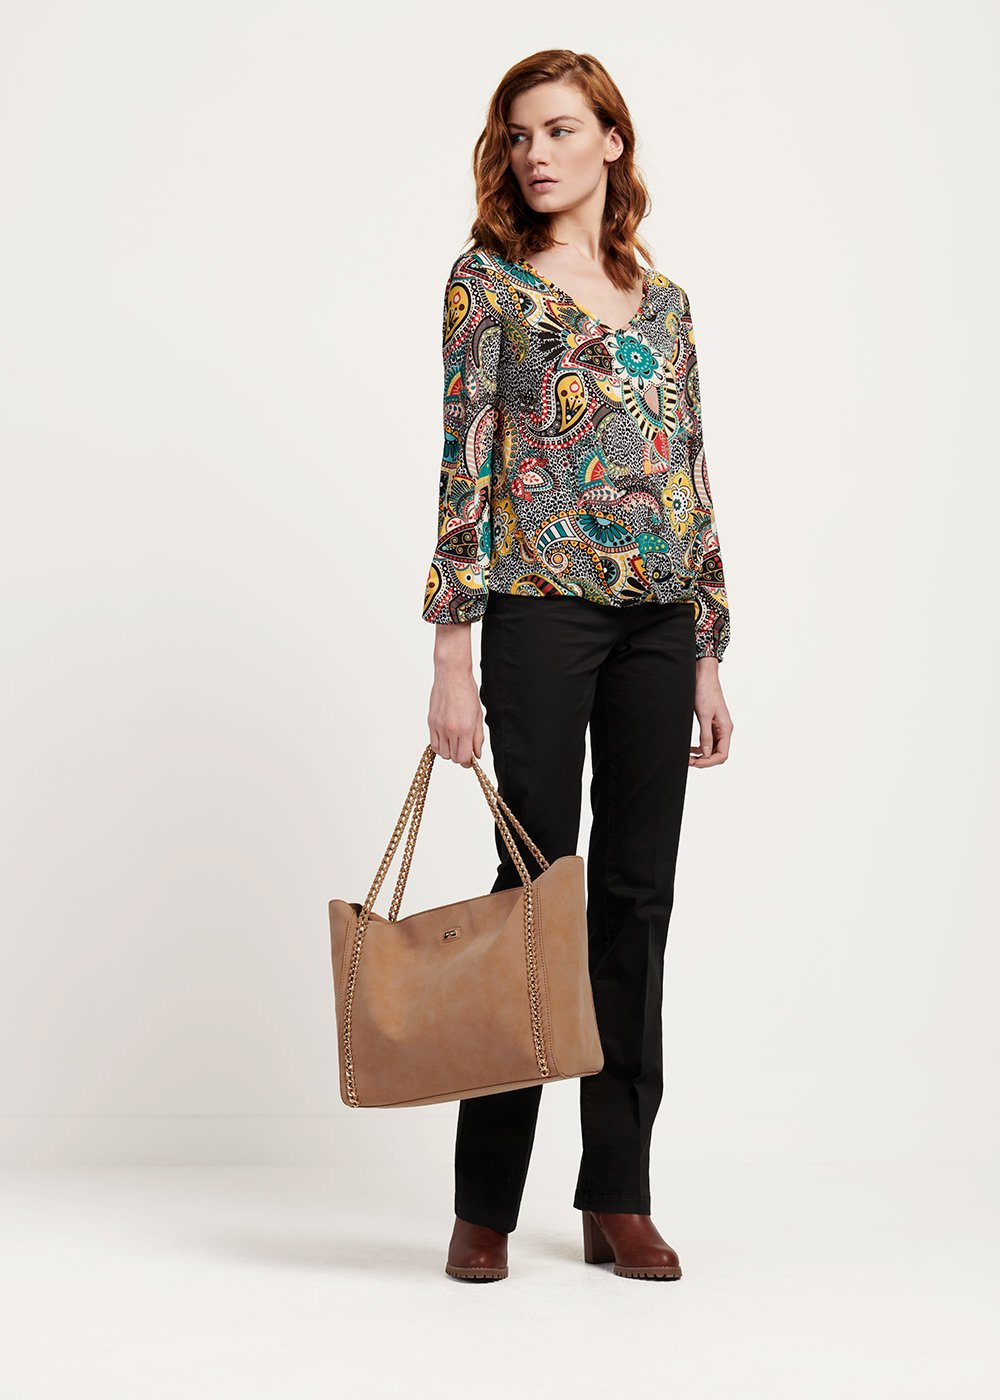 Body shopping bag with chain handle